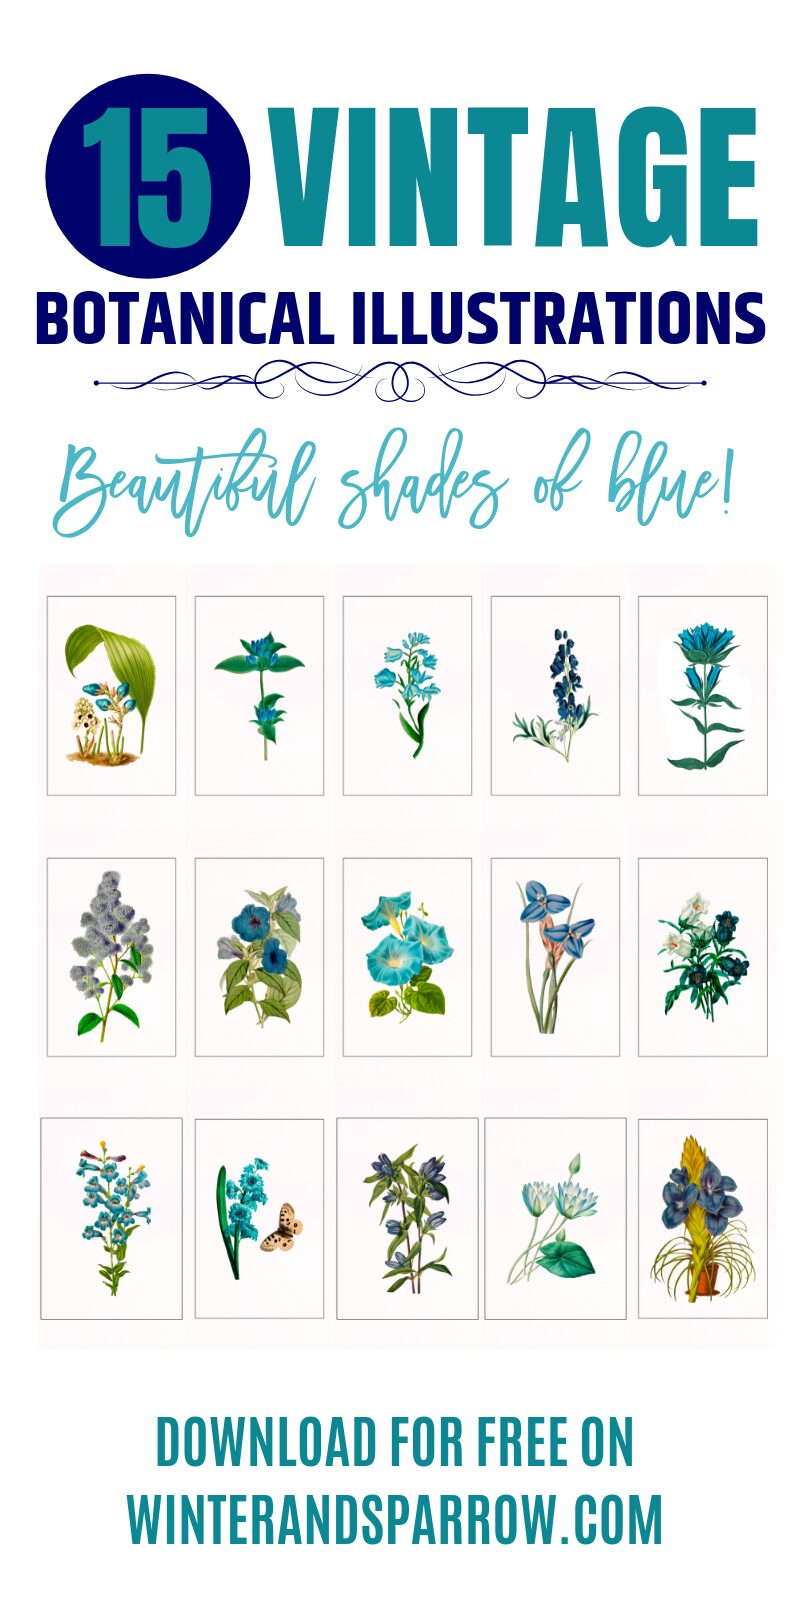 Blue Botanical Prints: 15 Vintage Illustrations That Will Add Beautiful Shades of Blue To Your Home | winterandsparrow.com #bluebotanicalillustrations #vintageillustrations #botanicalprints #vintagebotanicalprints #flowerprintables